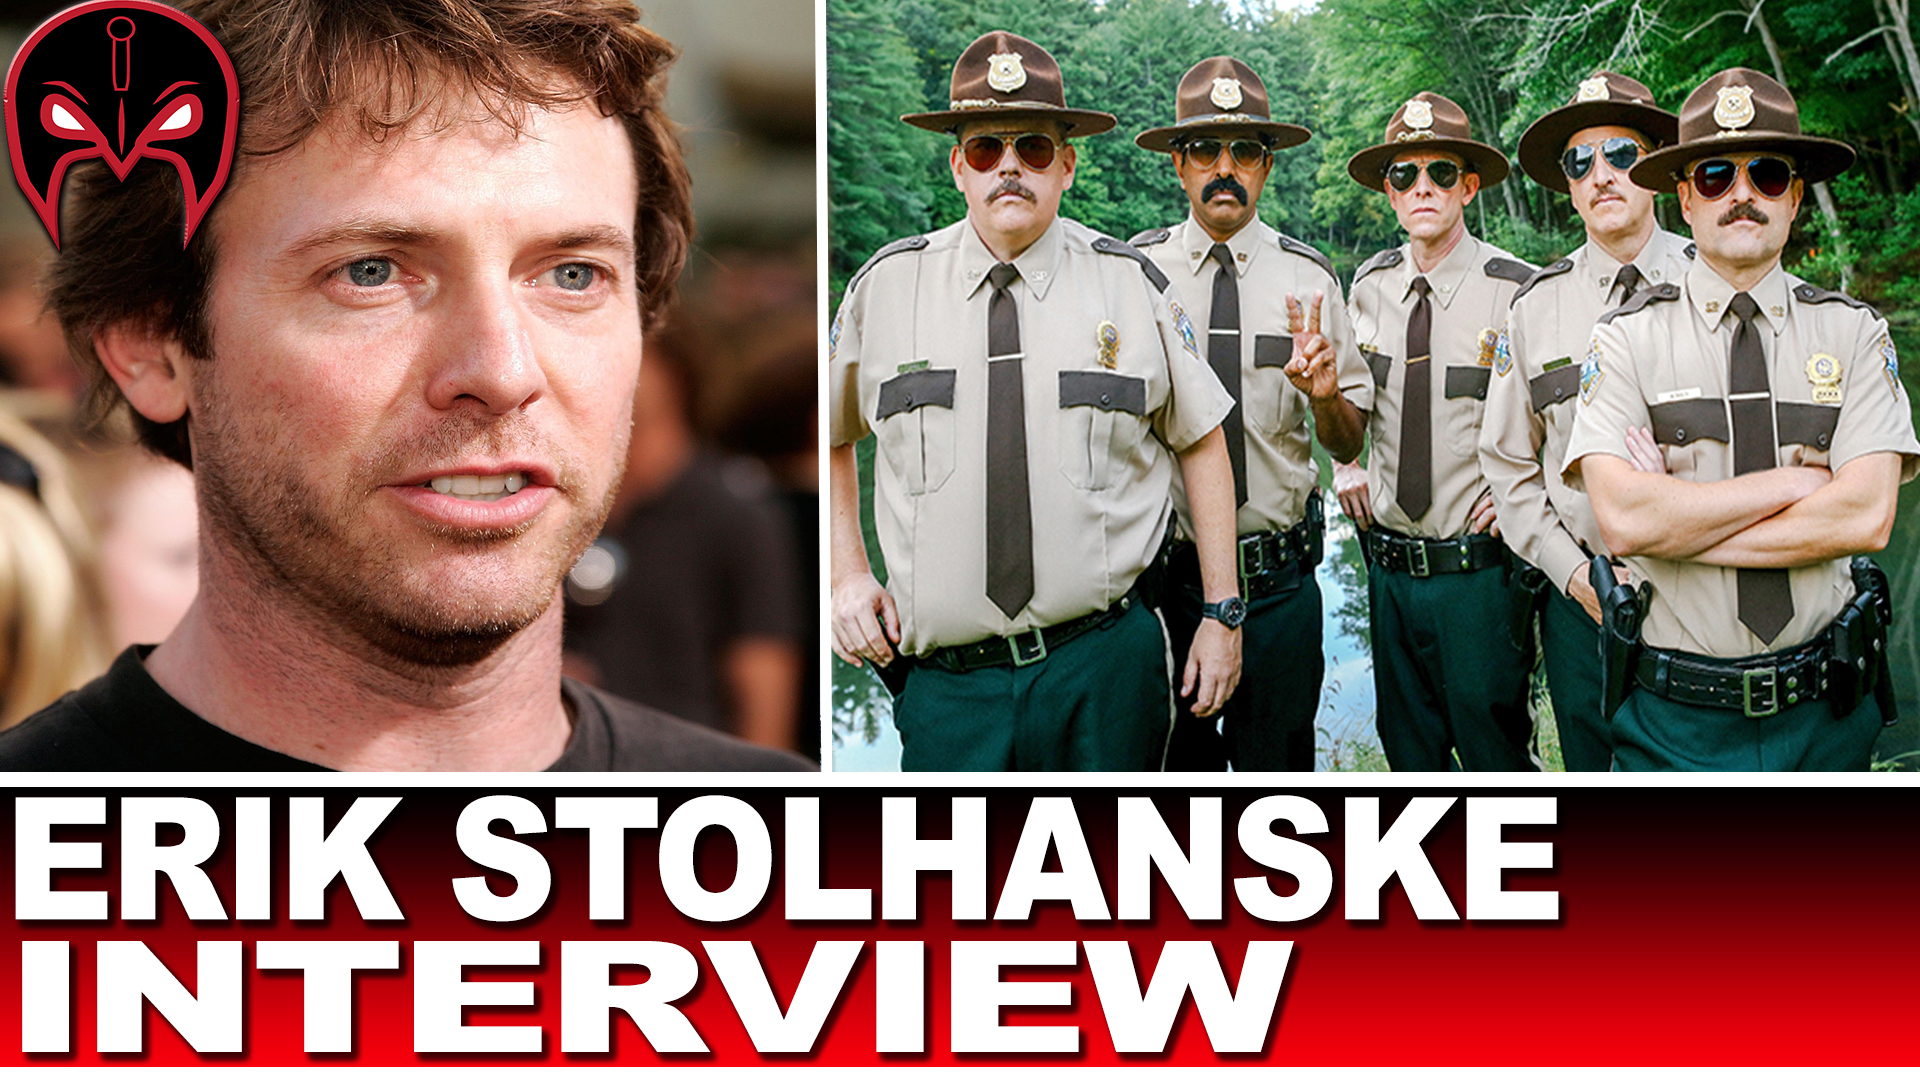 erik stolhanske interview.jpg